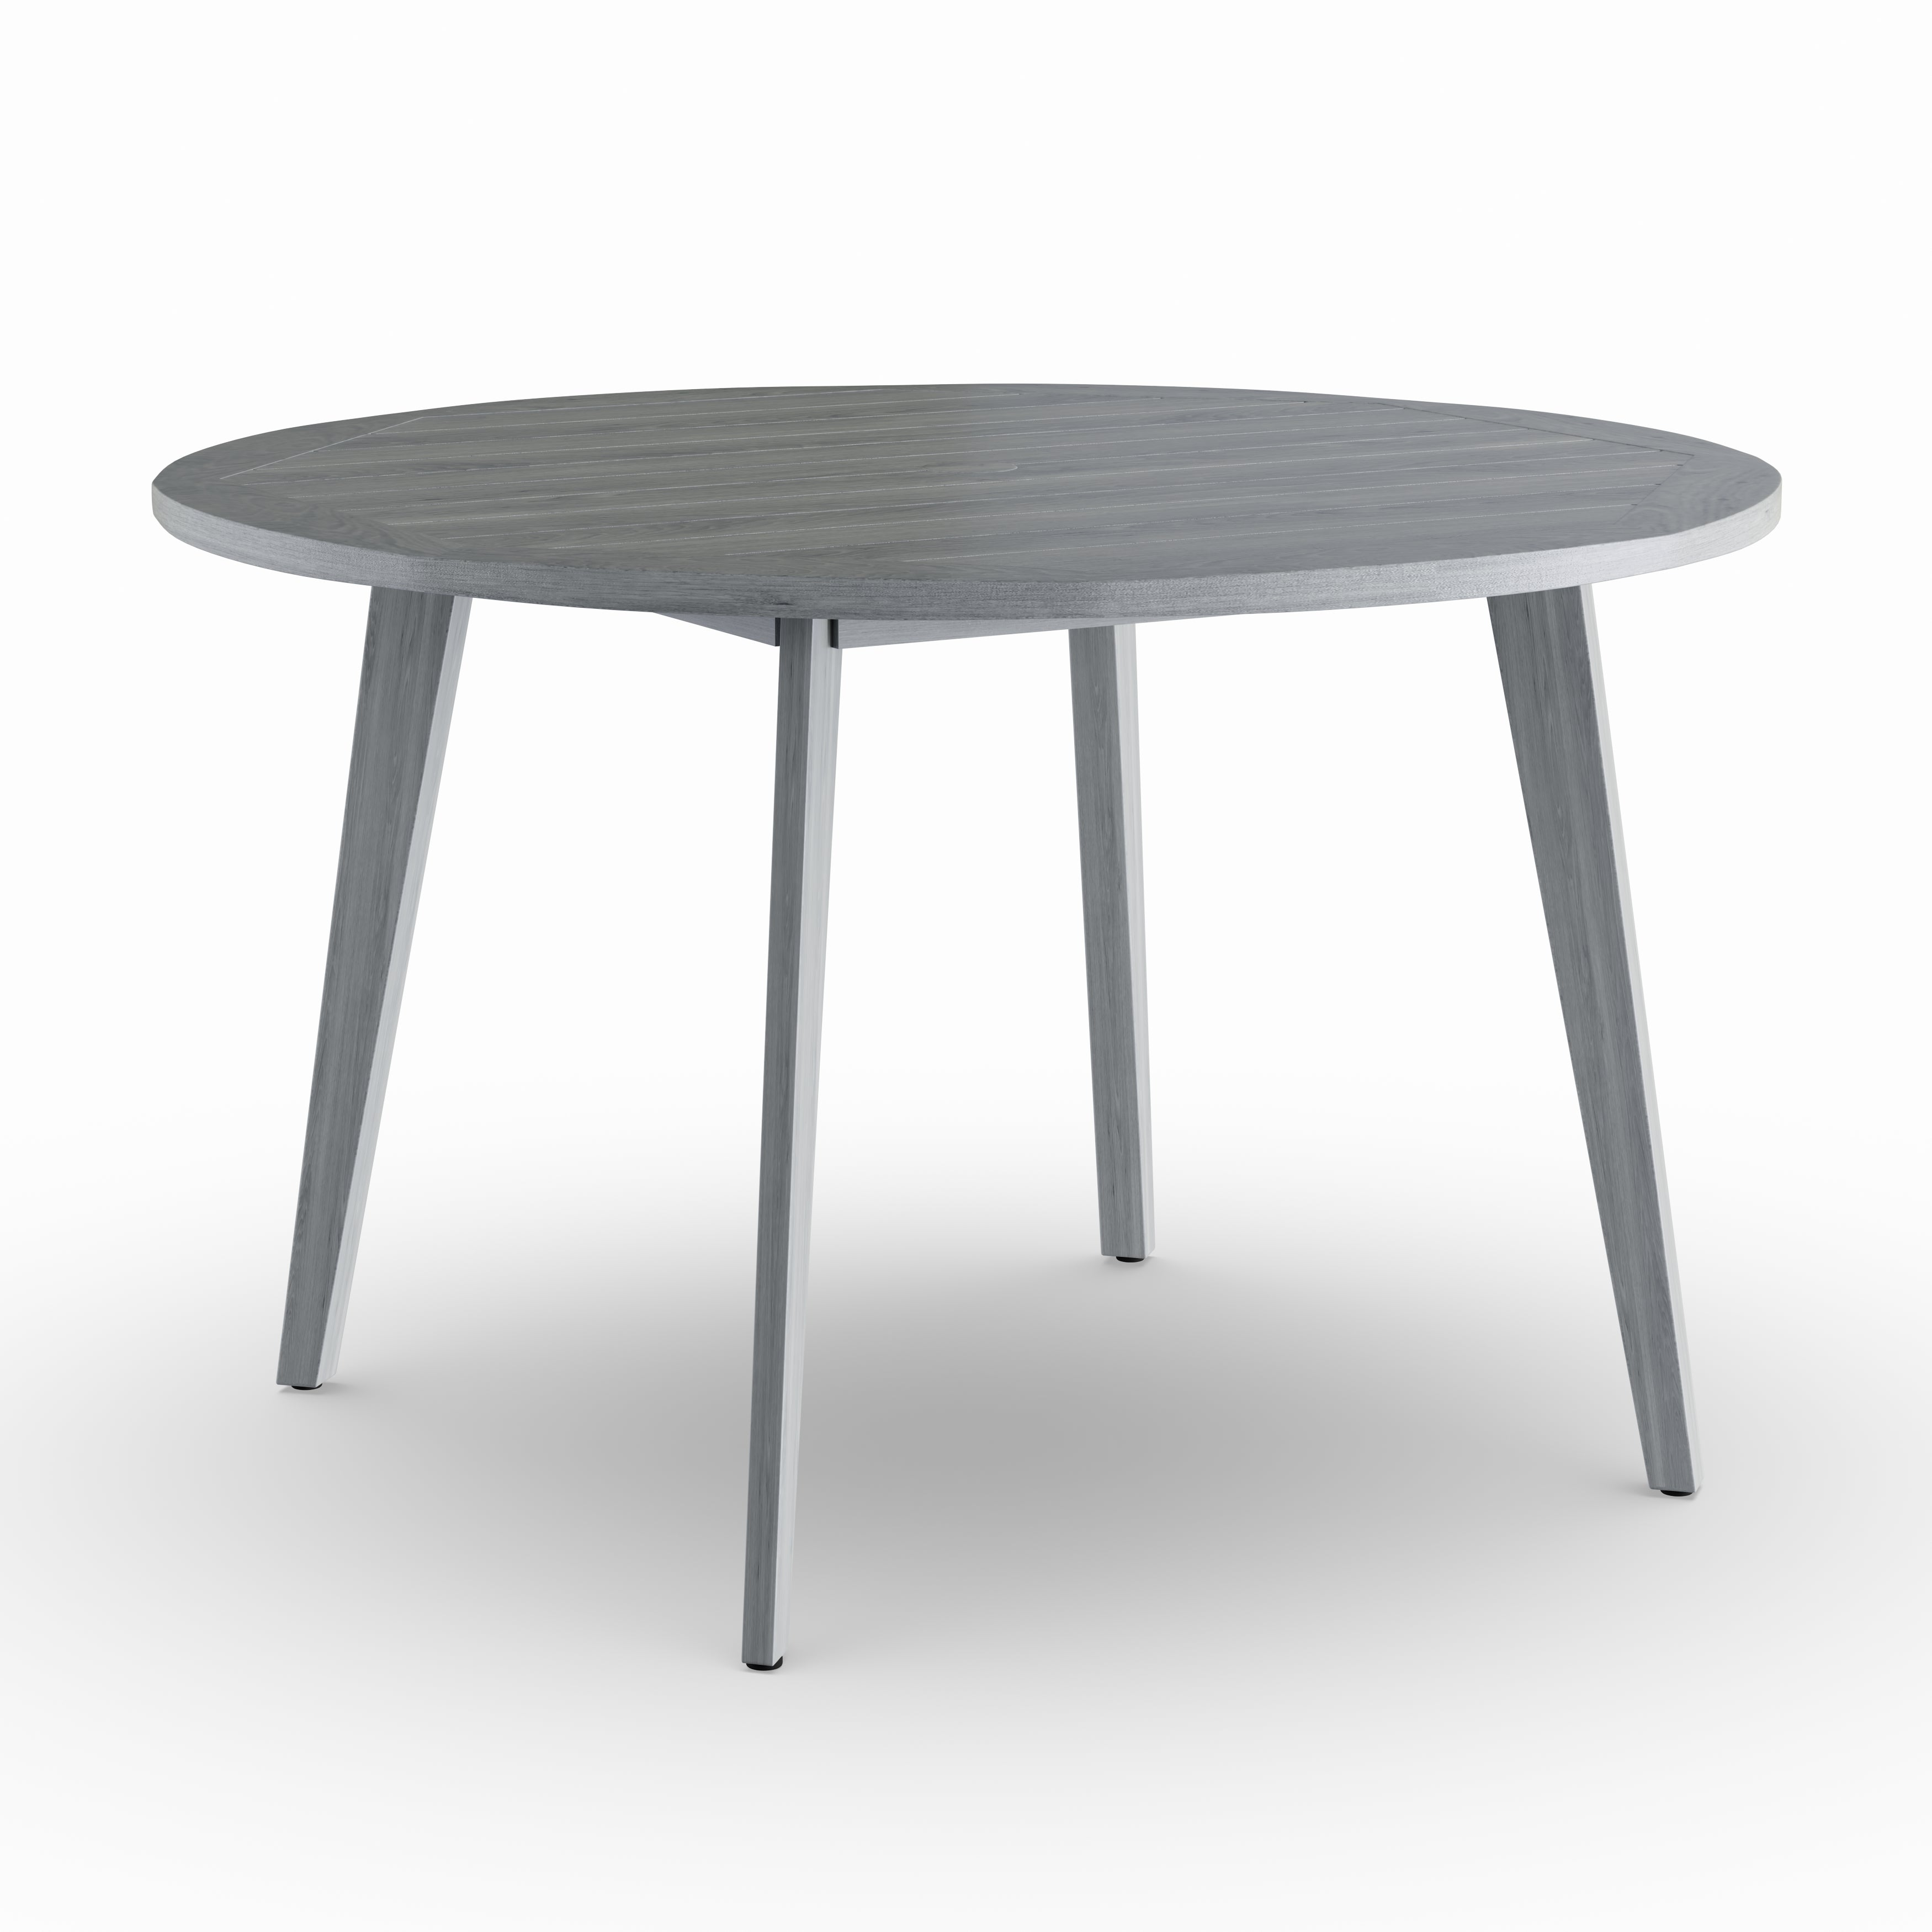 Shop Havenside Home Mamaroneck Grey Teak Outdoor Dining Table With